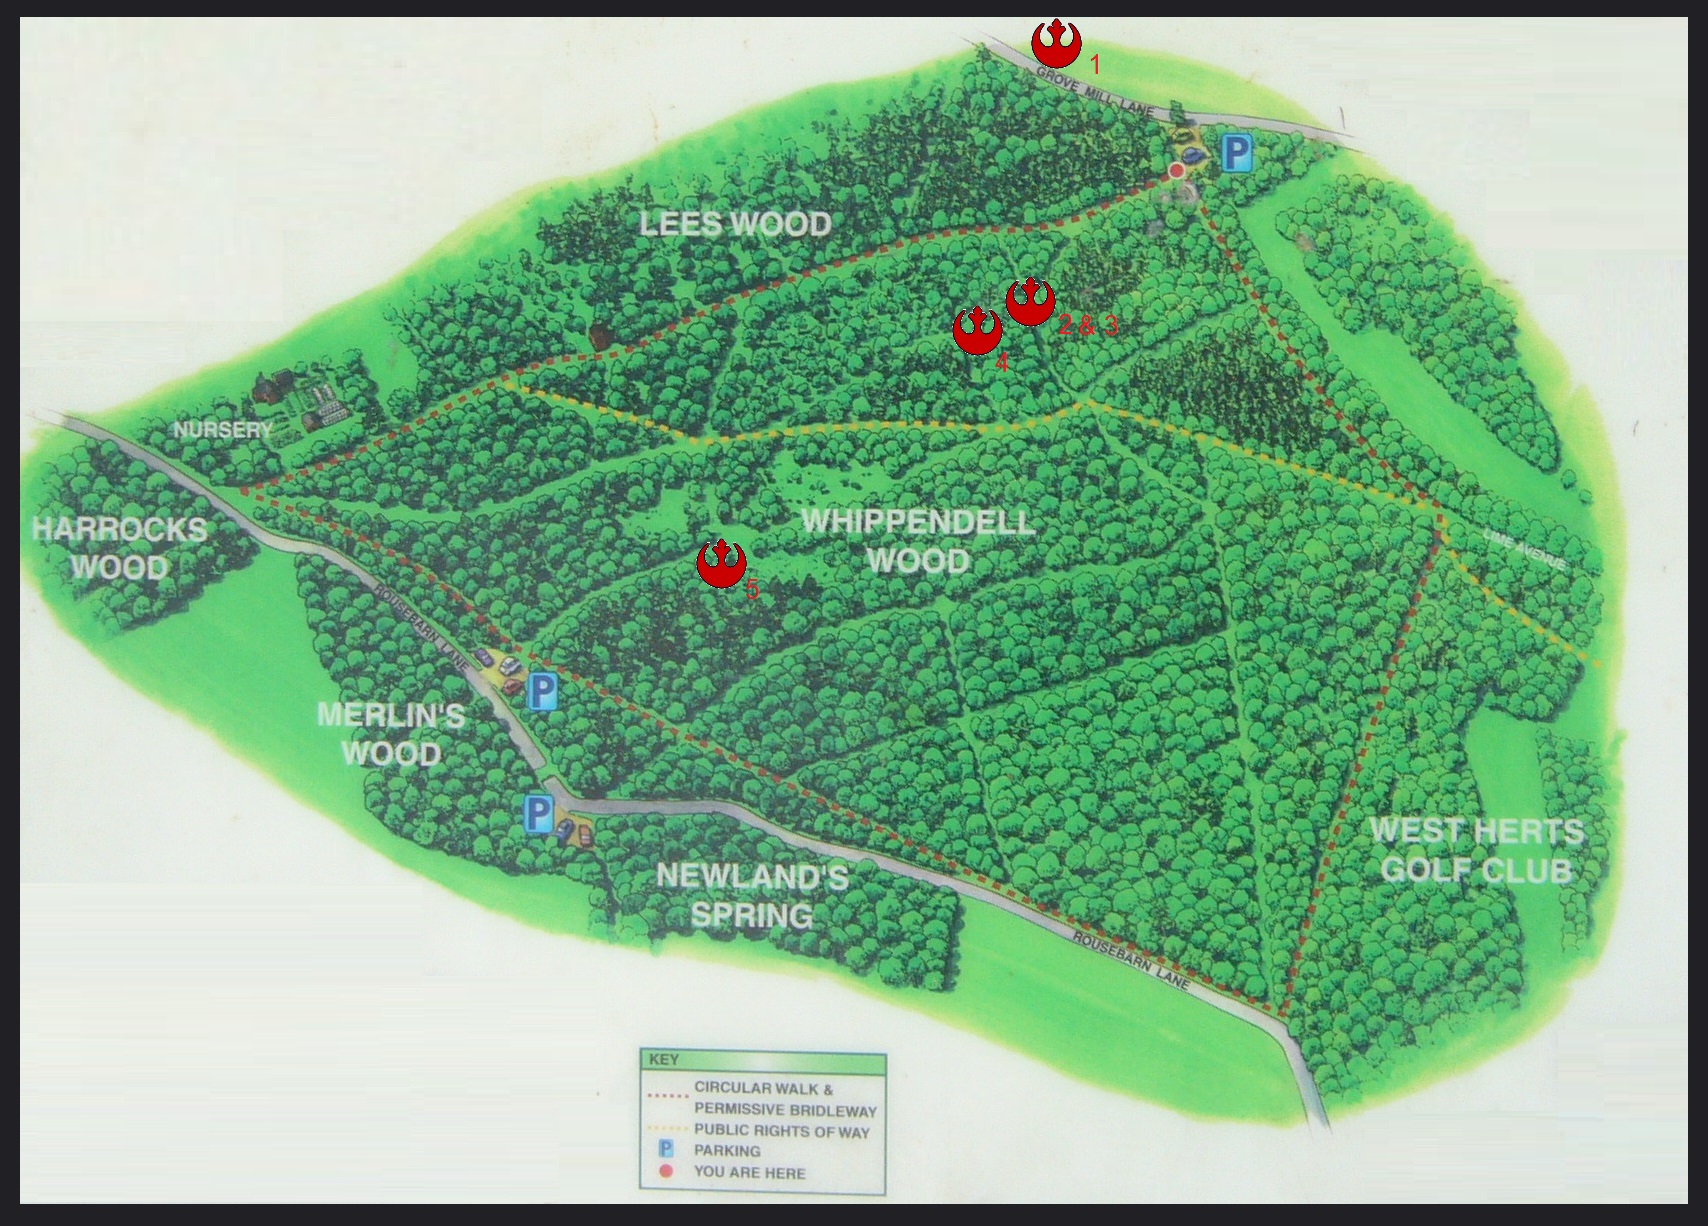 Whippendell Woods map